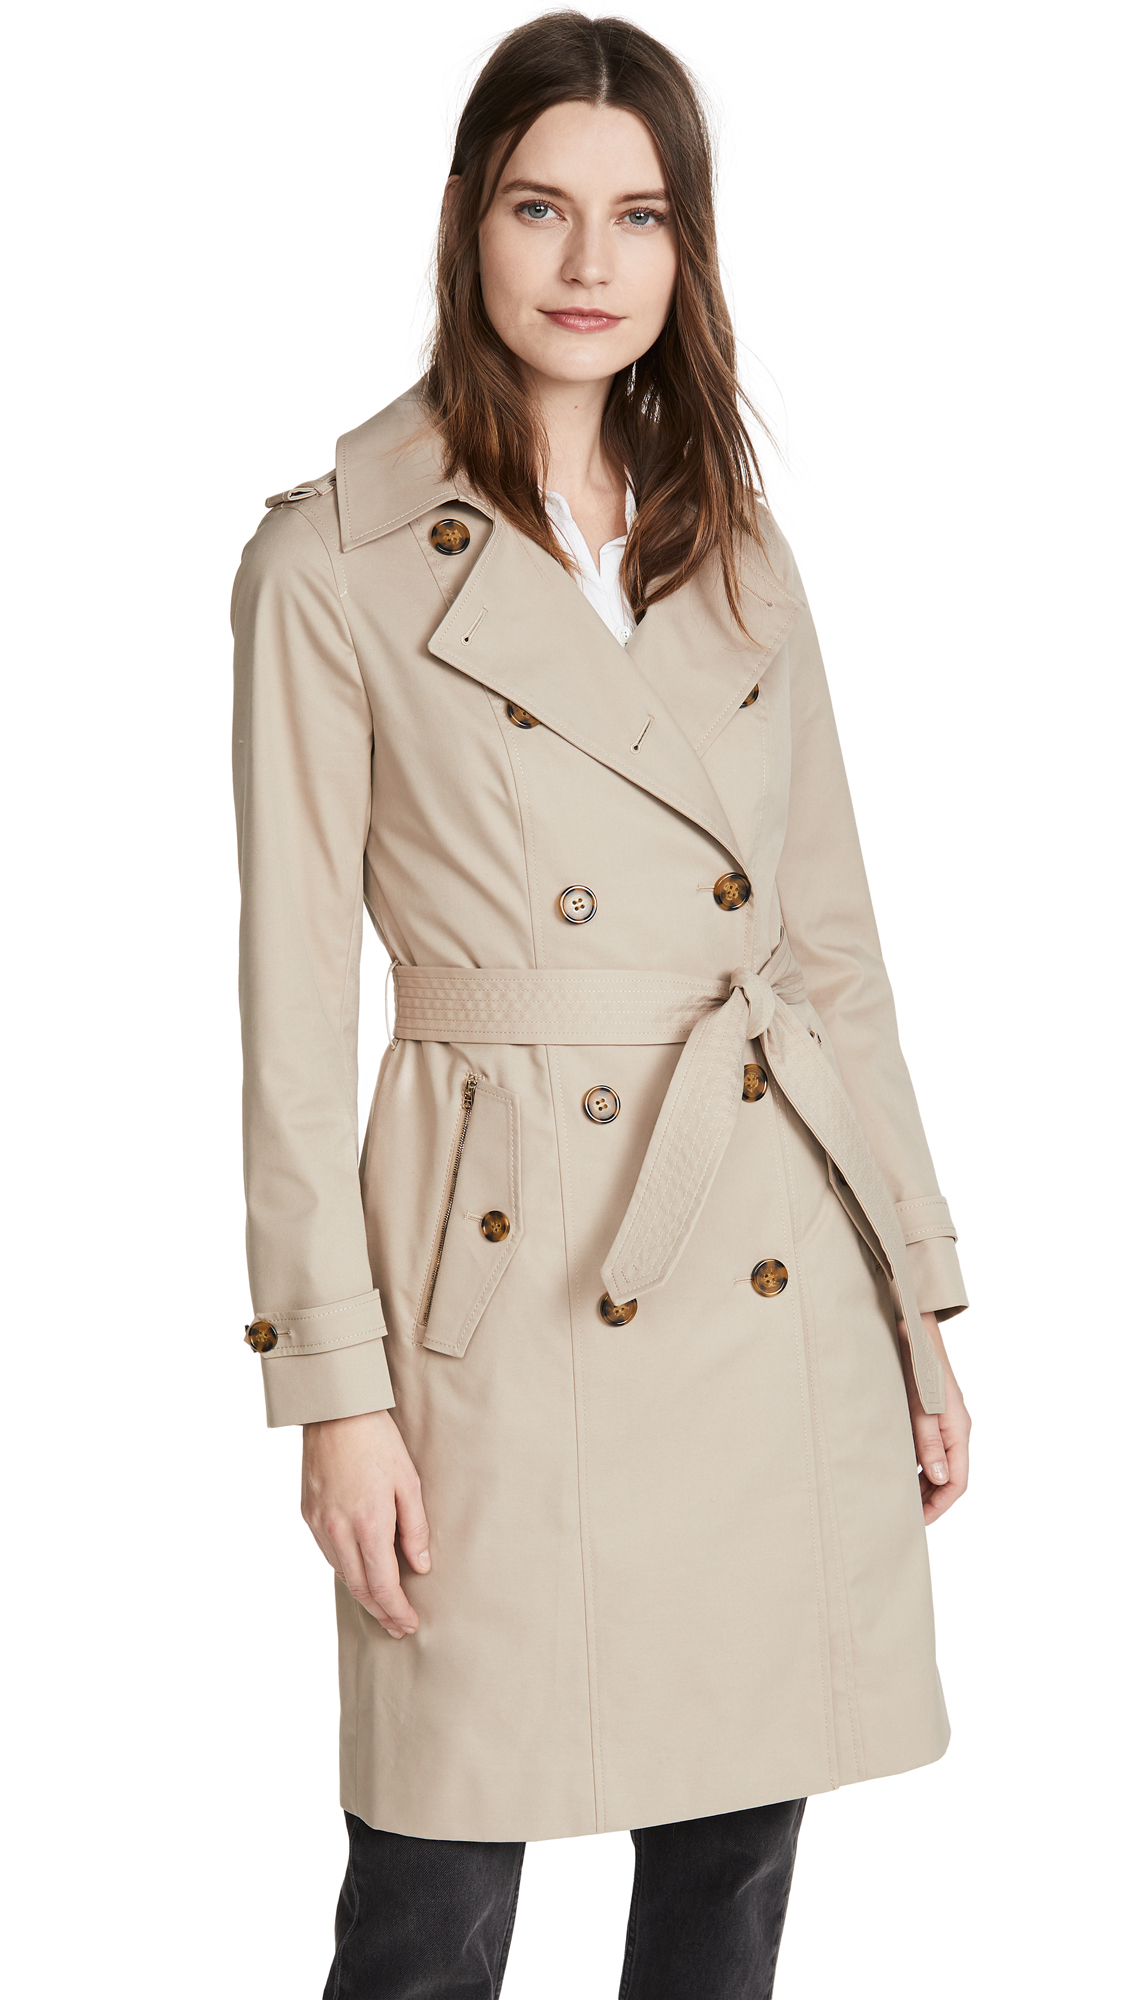 Buy Mackage Odel Jacket online beautiful Mackage Jackets, Coats, Trench Coats